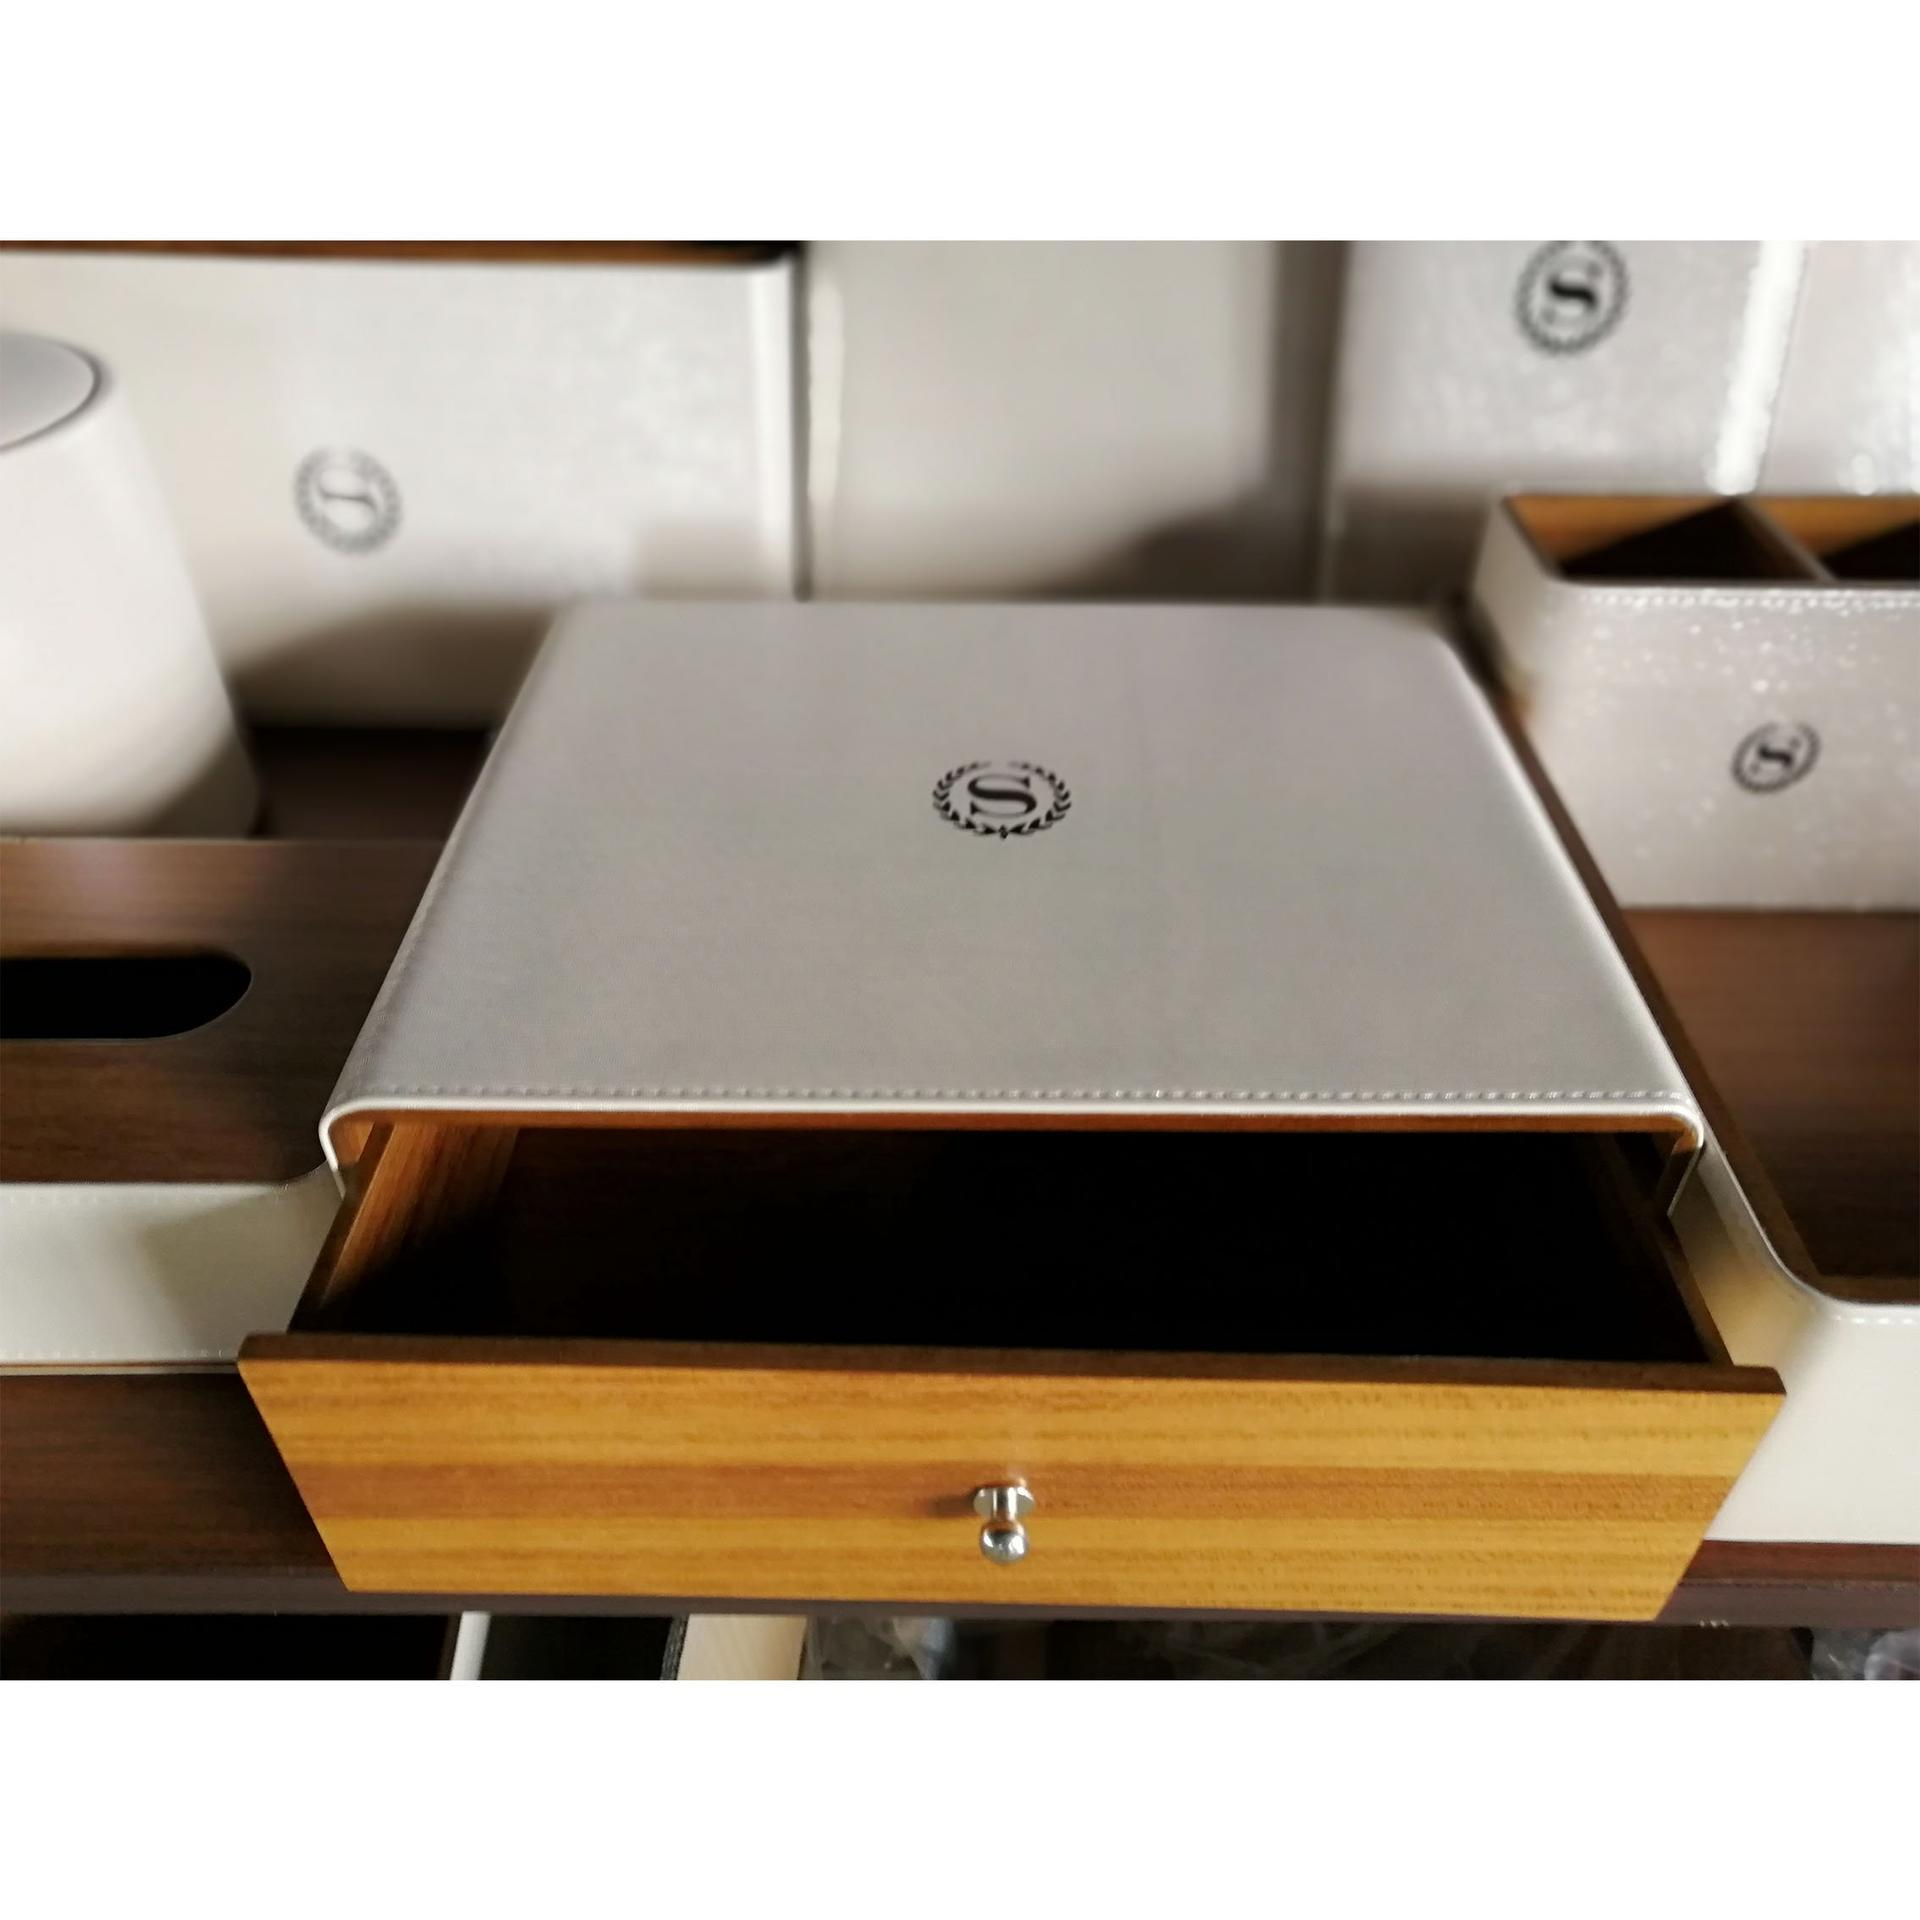 Leather products hotel room leather accessories set,leather holder,PU leather tissue box